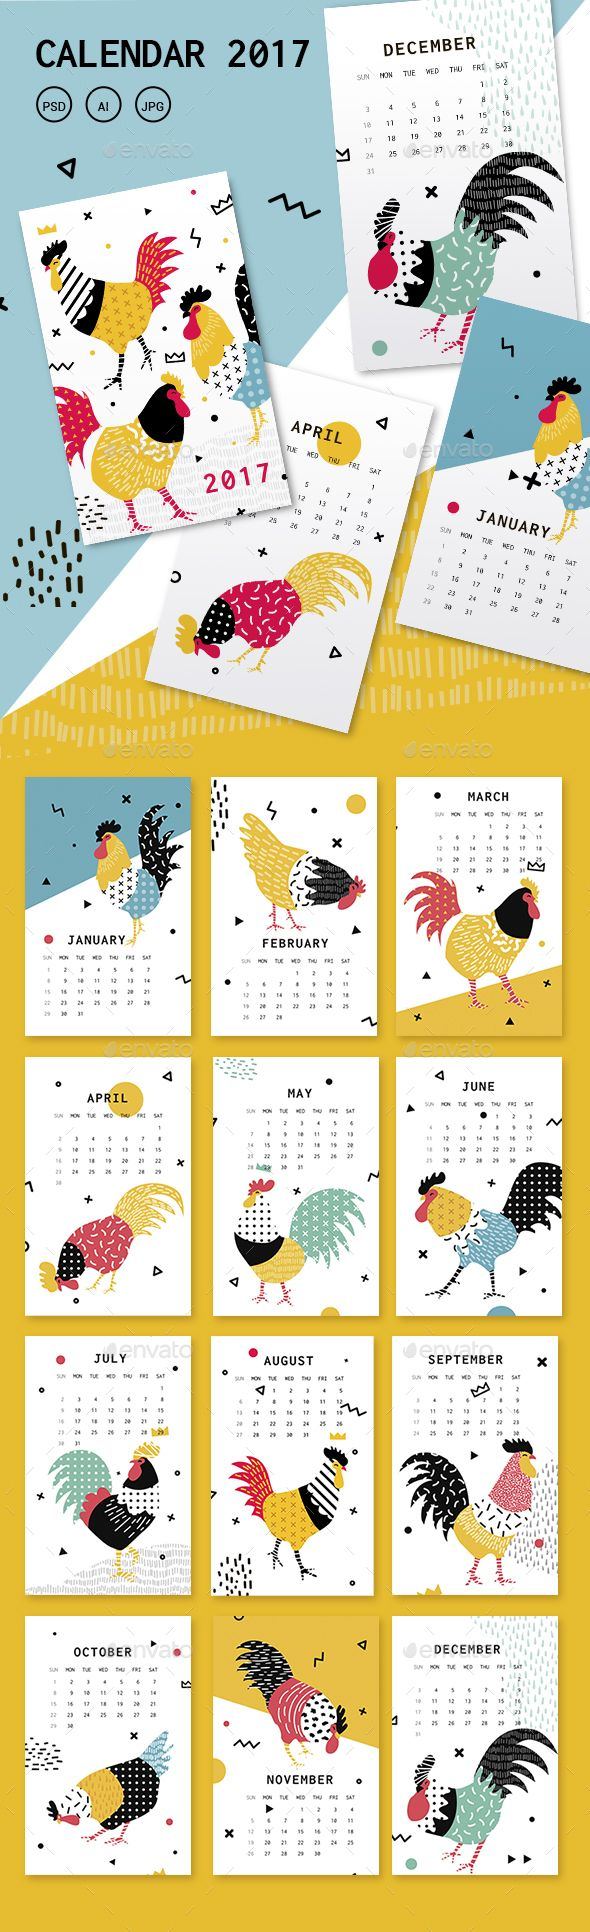 Calendar Template for the New Year 2017 with Roosters in the Memphis - PSD, JPG Image, AI Illustrator